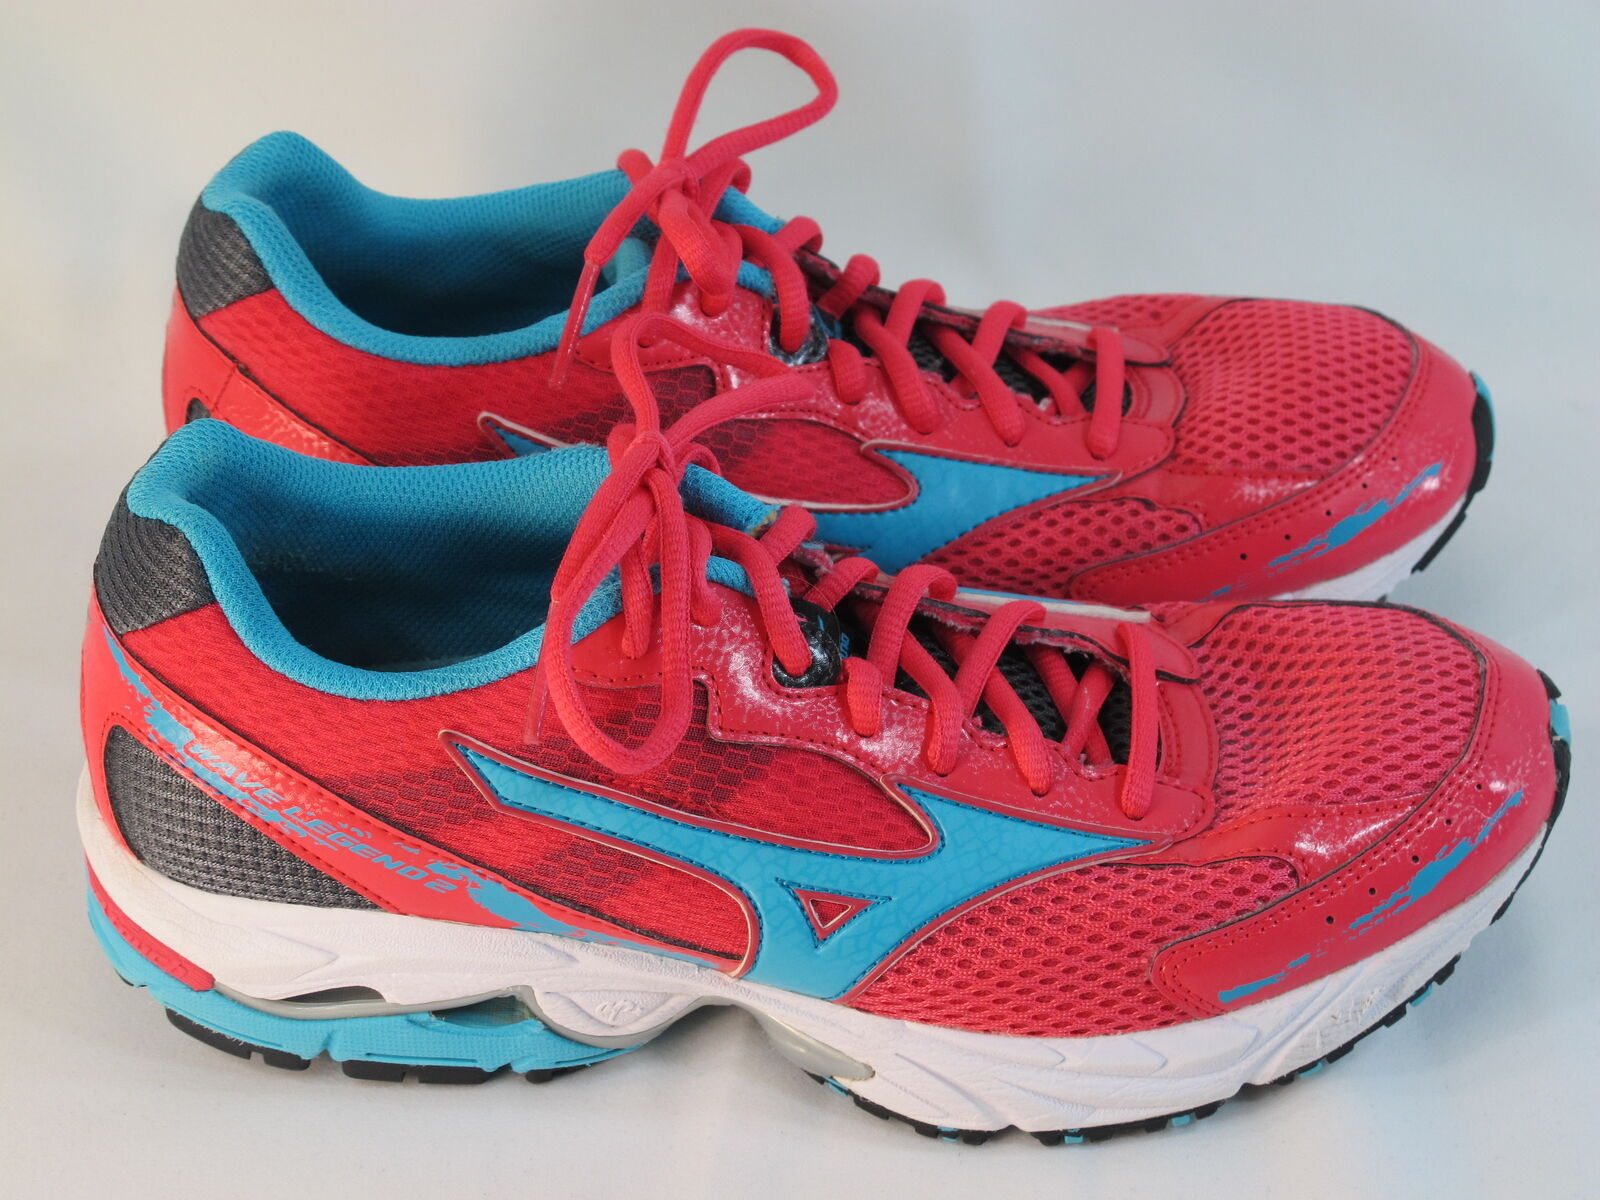 Mizuno Mizuno Mizuno Wave Legend 2 Running shoes Women's Size 8.5 US Excellent Plus Condition ca433e